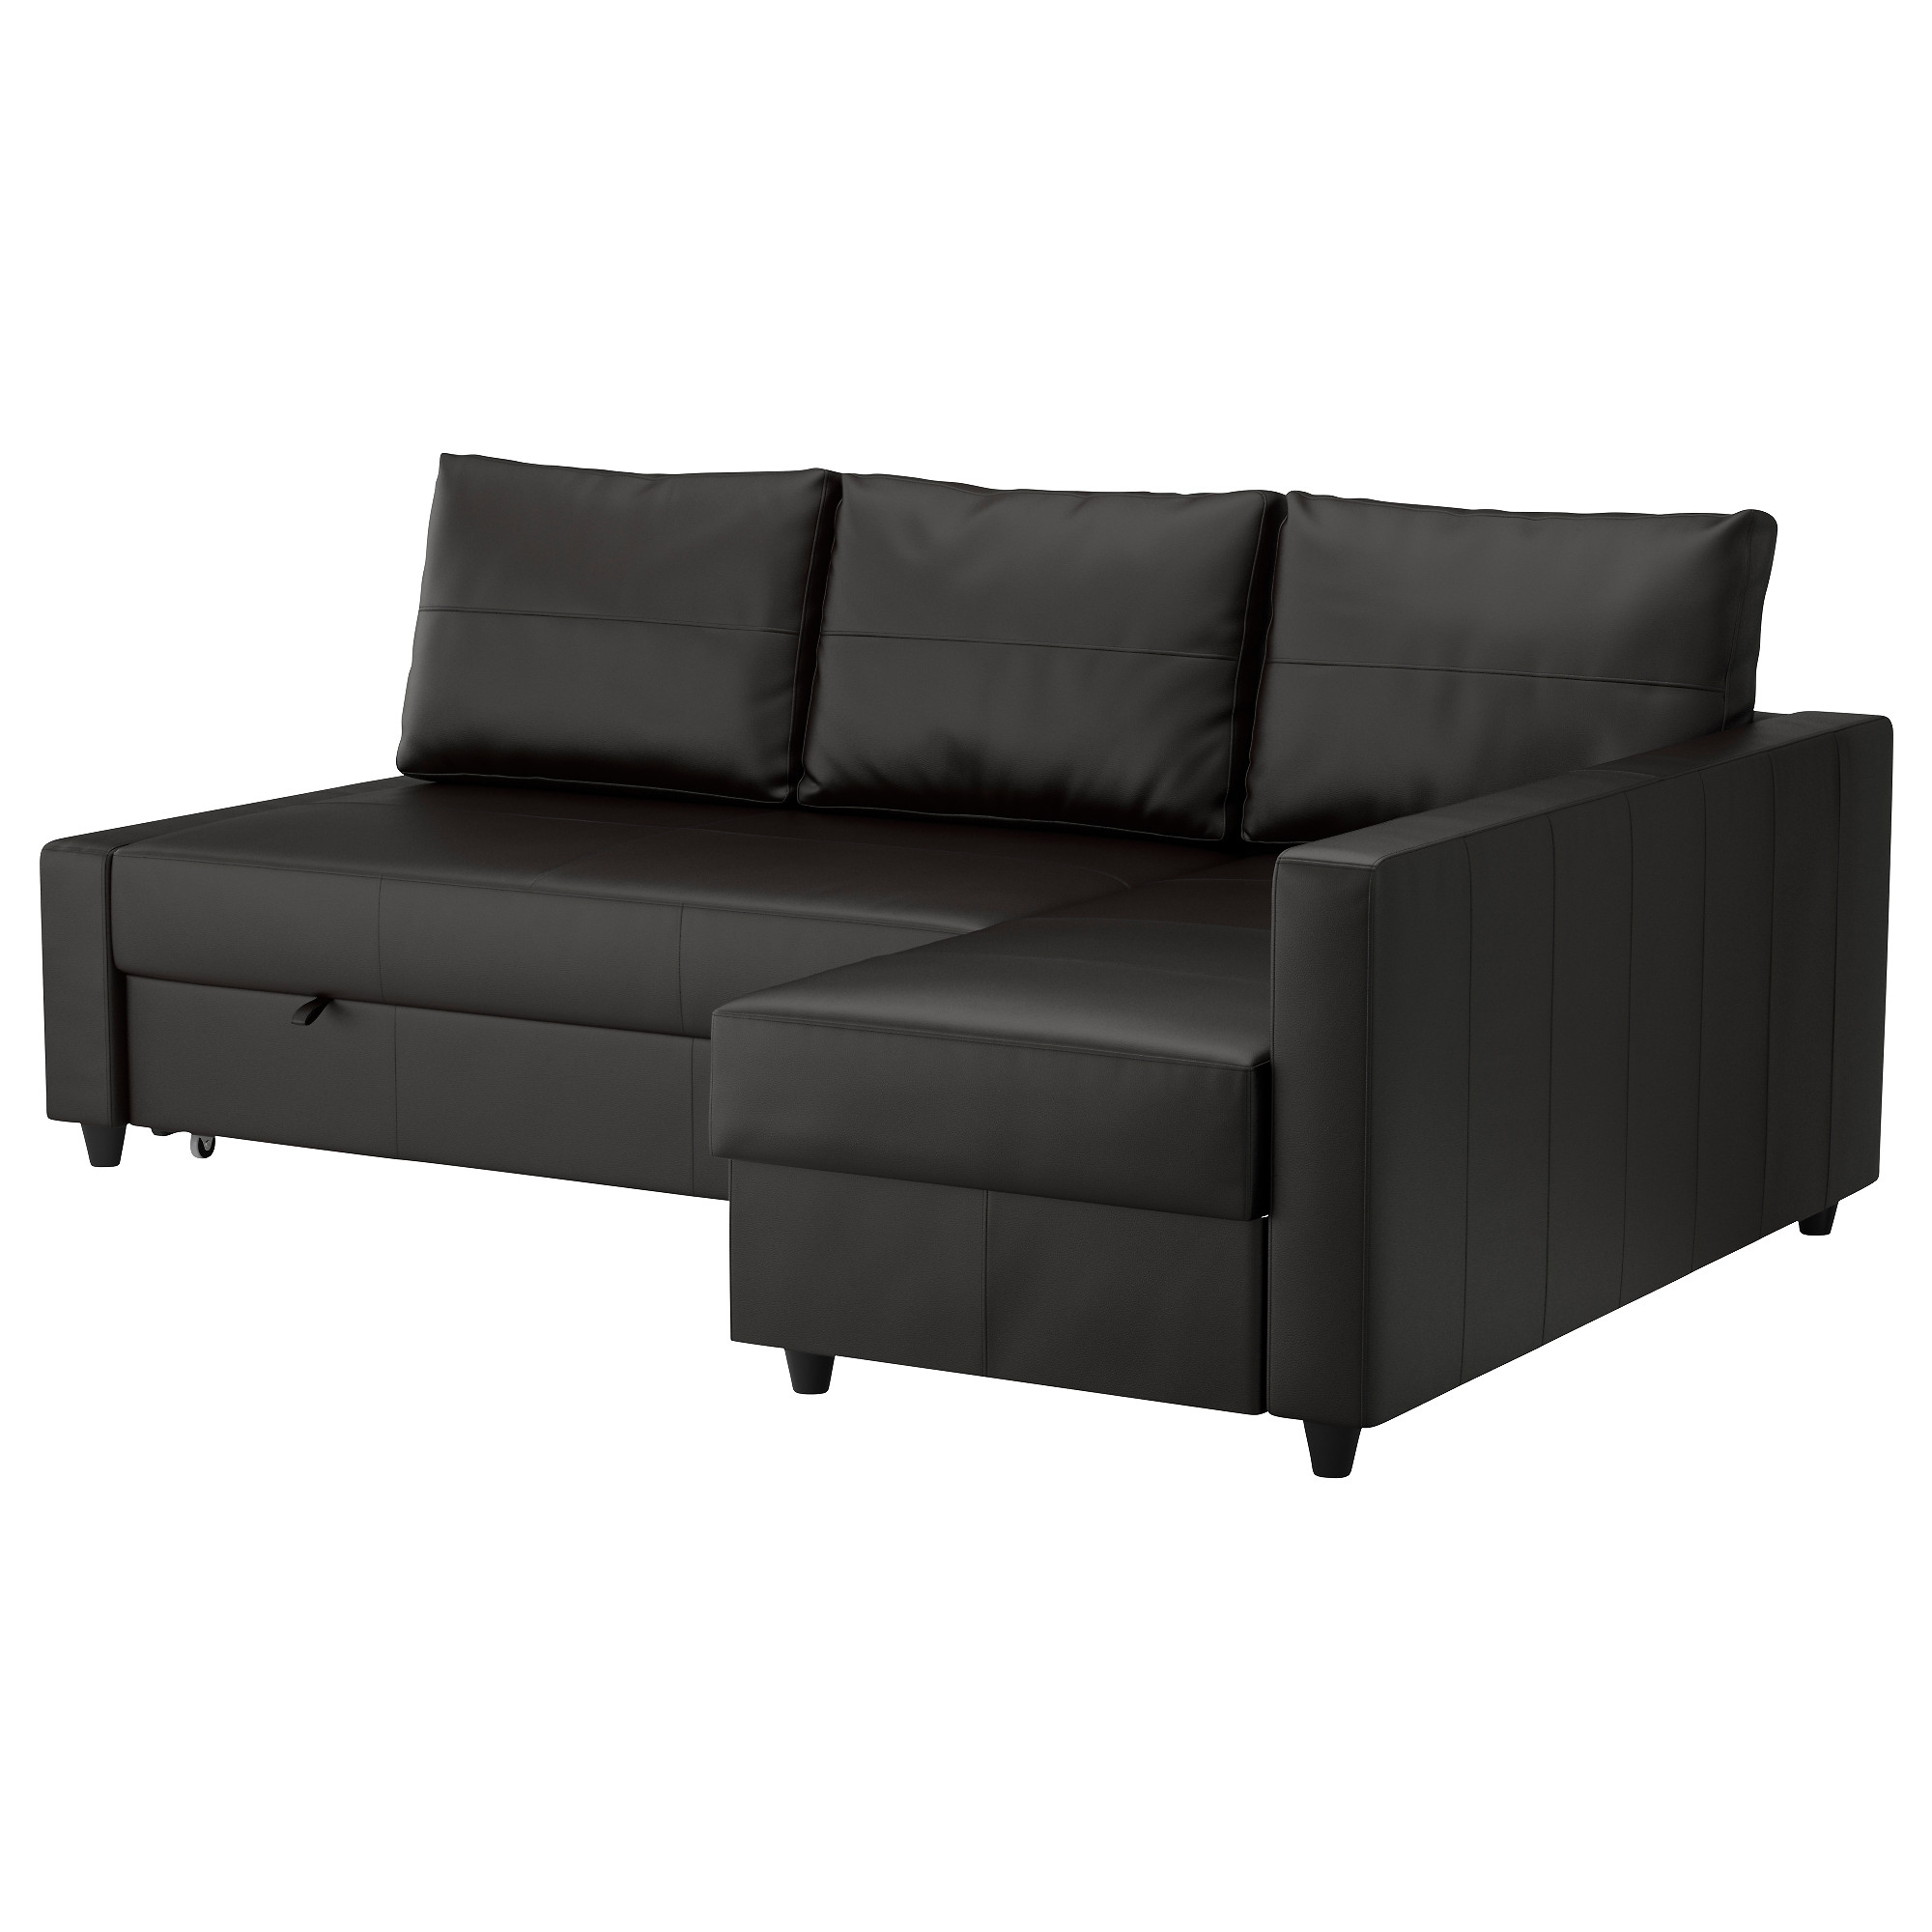 Friheten Corner Sofa Bed With Storage Bomstad Black Ikea With Corner Couch Bed (Image 6 of 15)